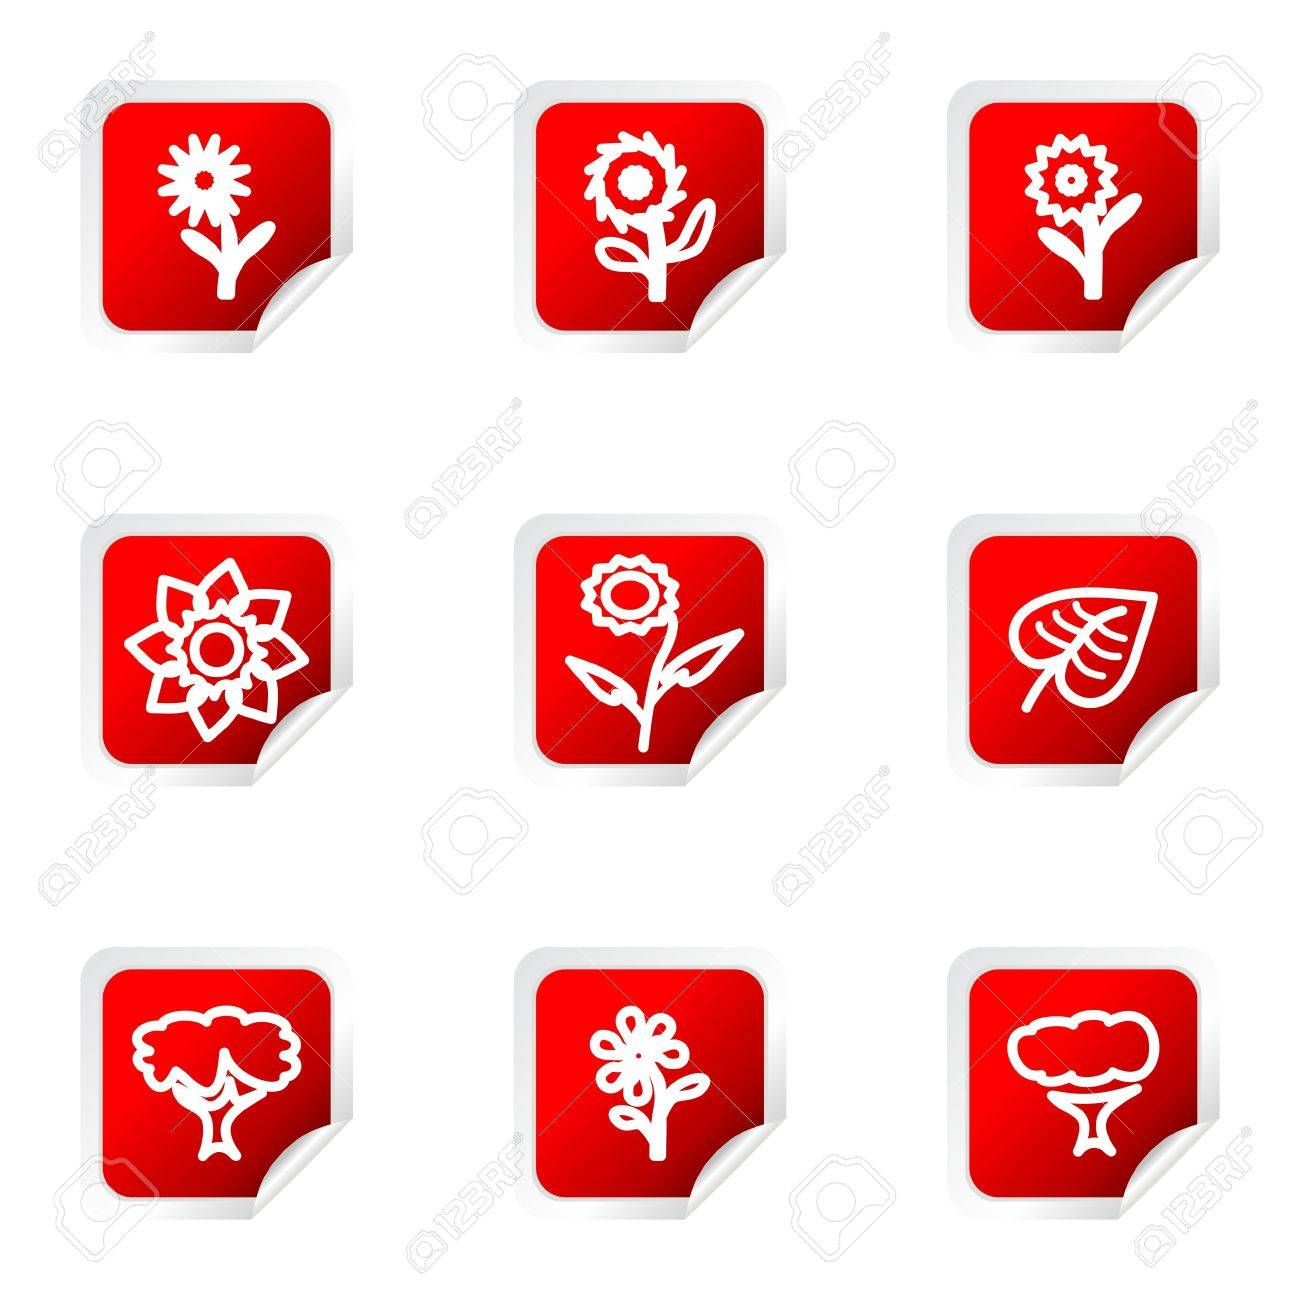 Set of 9 glossy web icons (set 18). Red square with corner. Stock Vector - 16710767